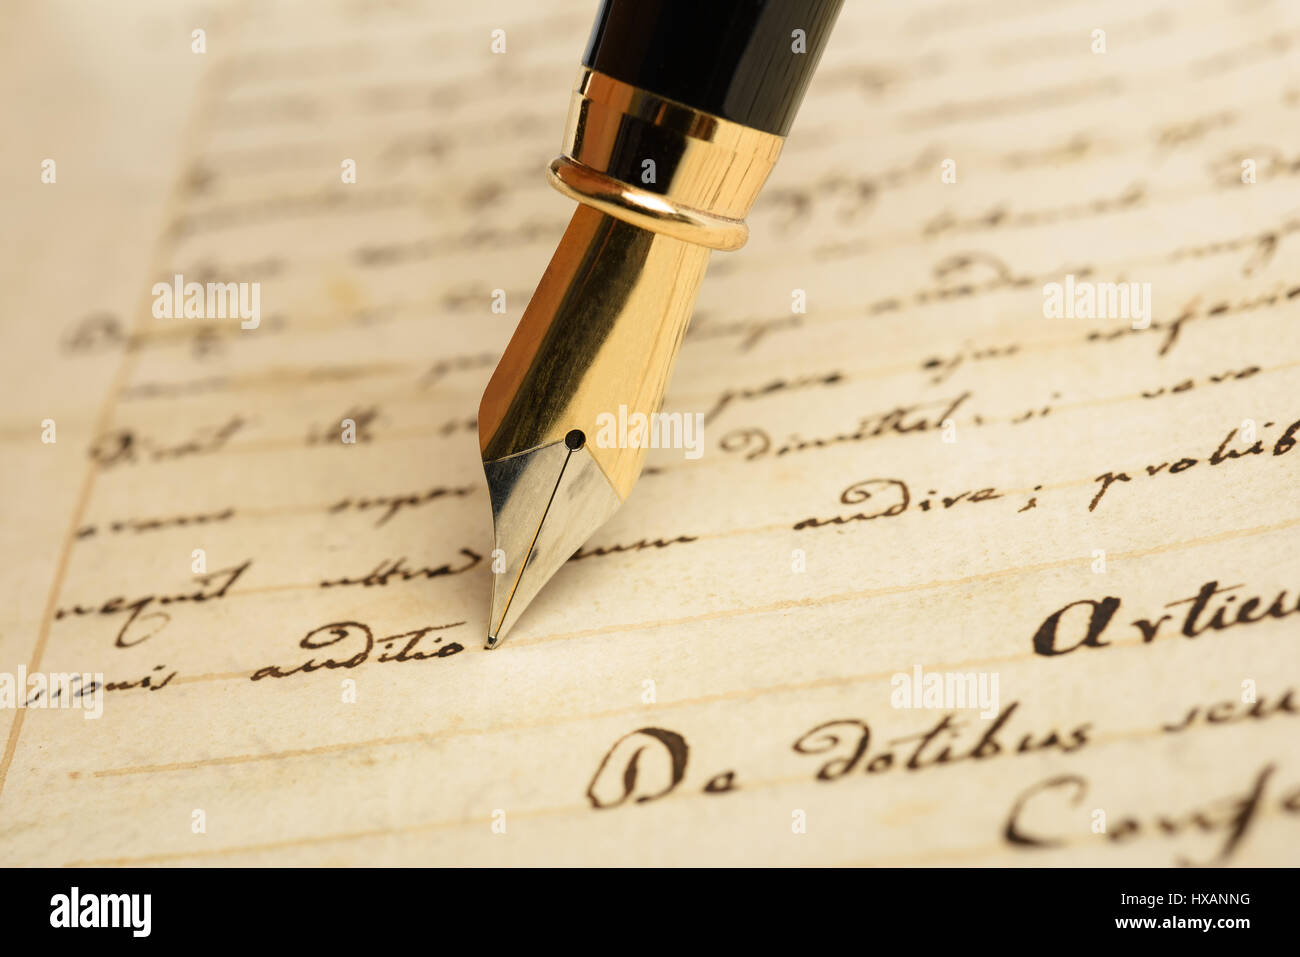 Fountain pen is writing on a letter - Stock Image